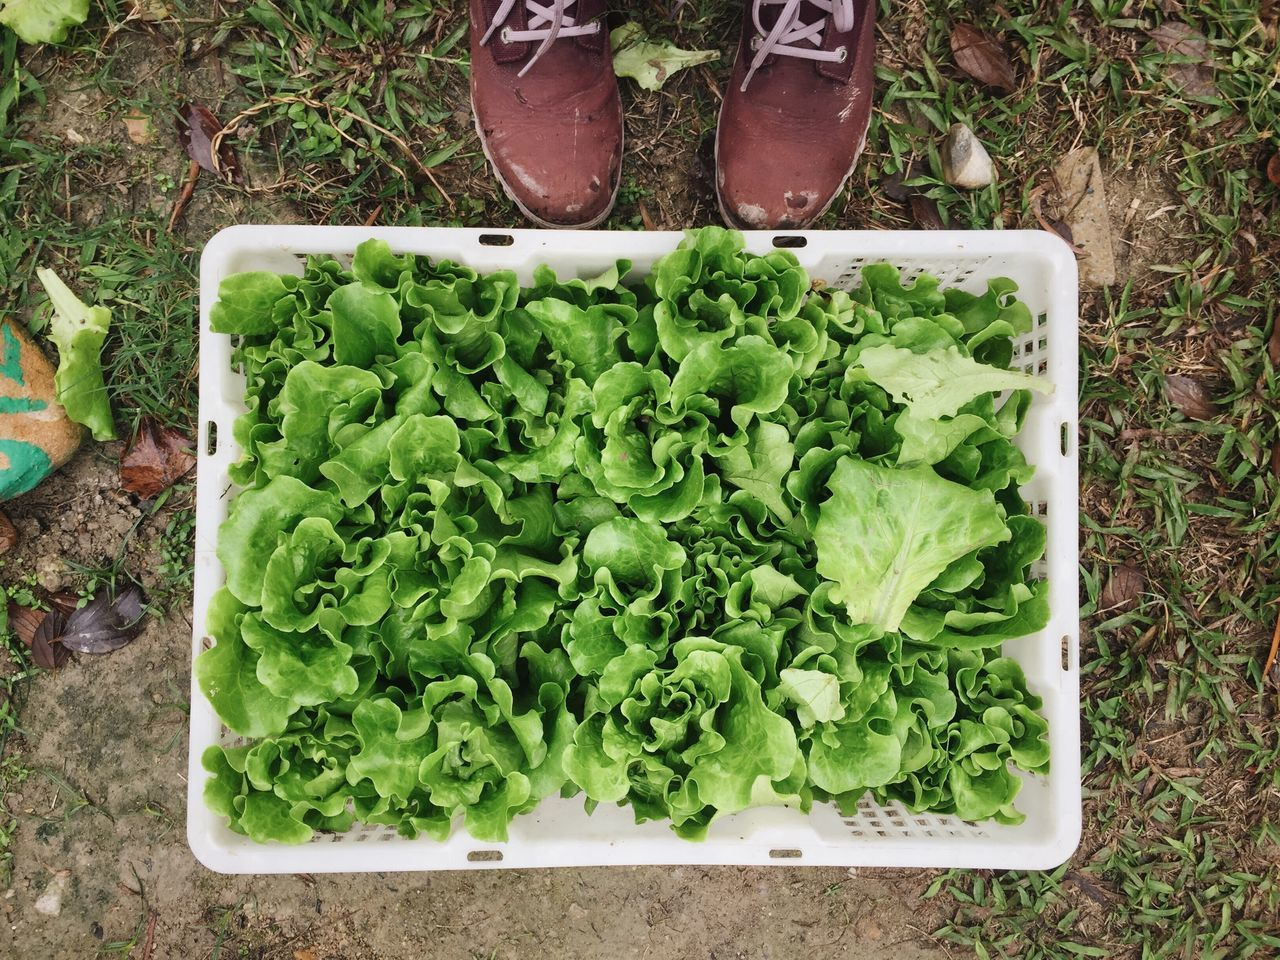 my home grown veggie! Green Color Healthy Eating Freshness Vegetable High Angle View Food And Drink Food Plant Growth No People Crate Day Lettuce Outdoors Close-up Nature